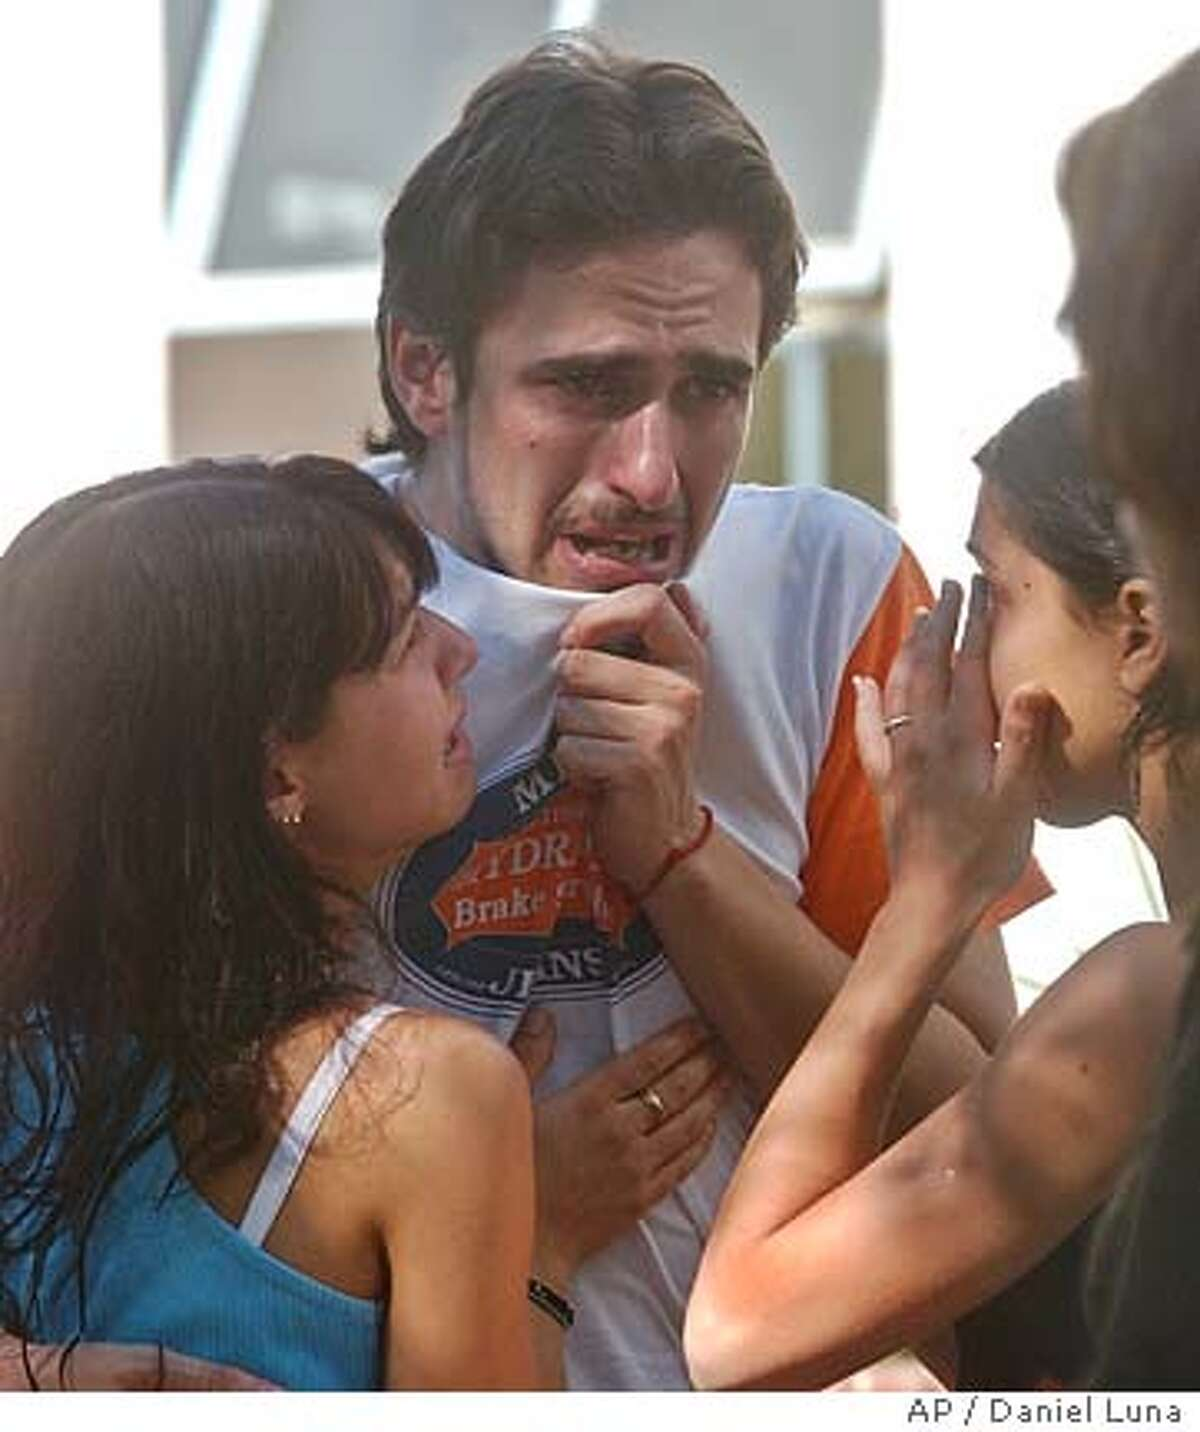 Grieving family members react after finding their loved ones in the morgue of a local hospital, 175 people were killed and more than 600 injured when a fire swept through a crowded nightclub in Buenos Aires, Argentina, Friday, Dec. 31, 2004. Several survivors said they saw a flare hit a foam lining on the roof of the concert hall, triggering a fire. (AP Photo/Daniel Luna)